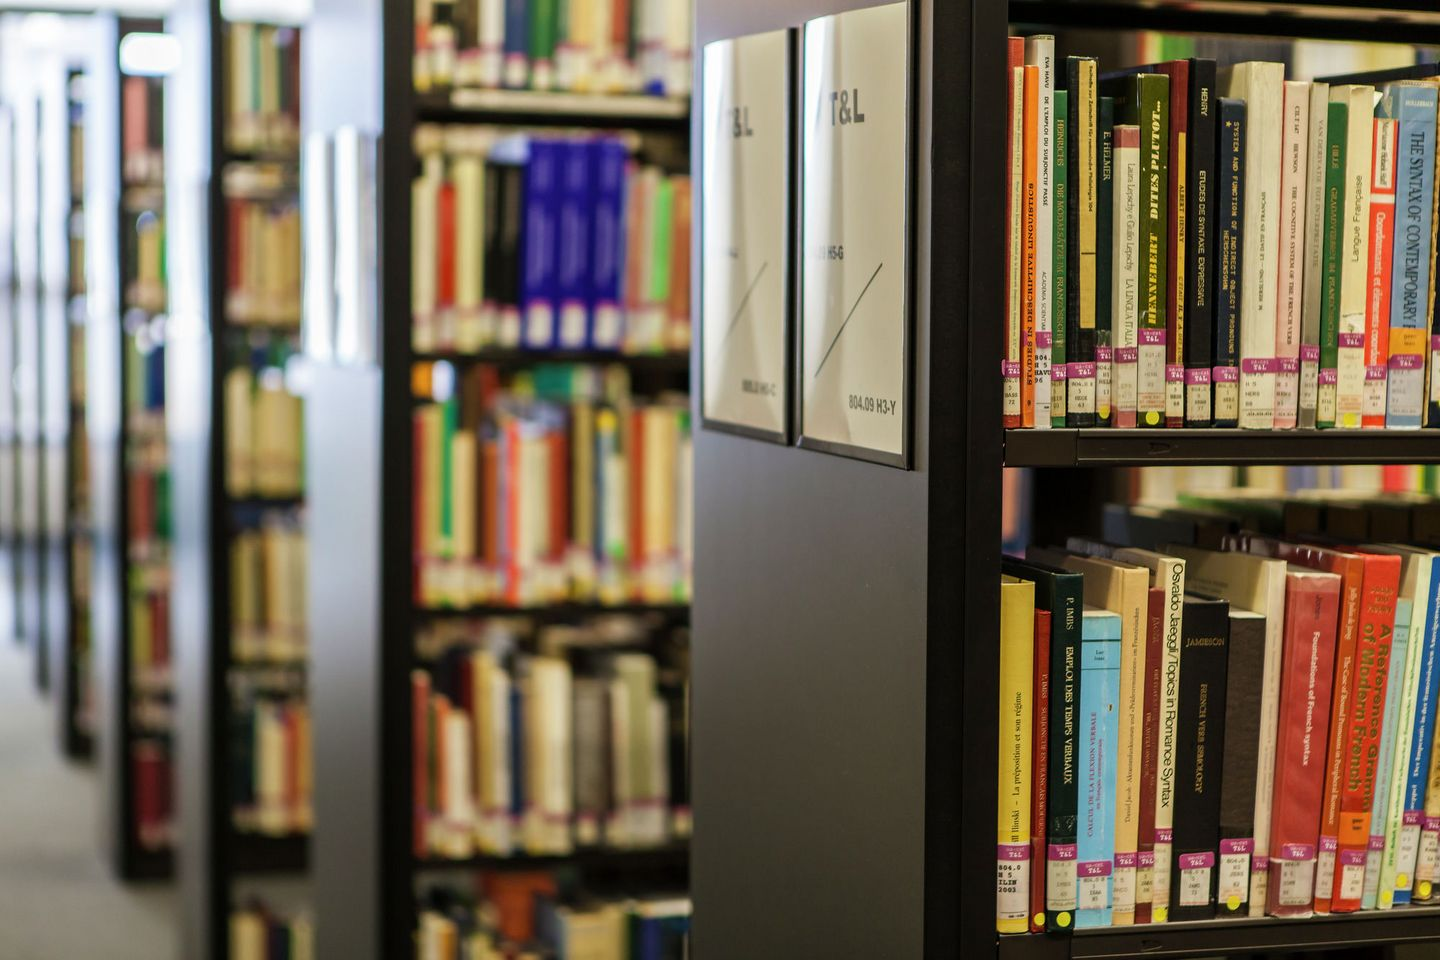 bookshelves-in-library